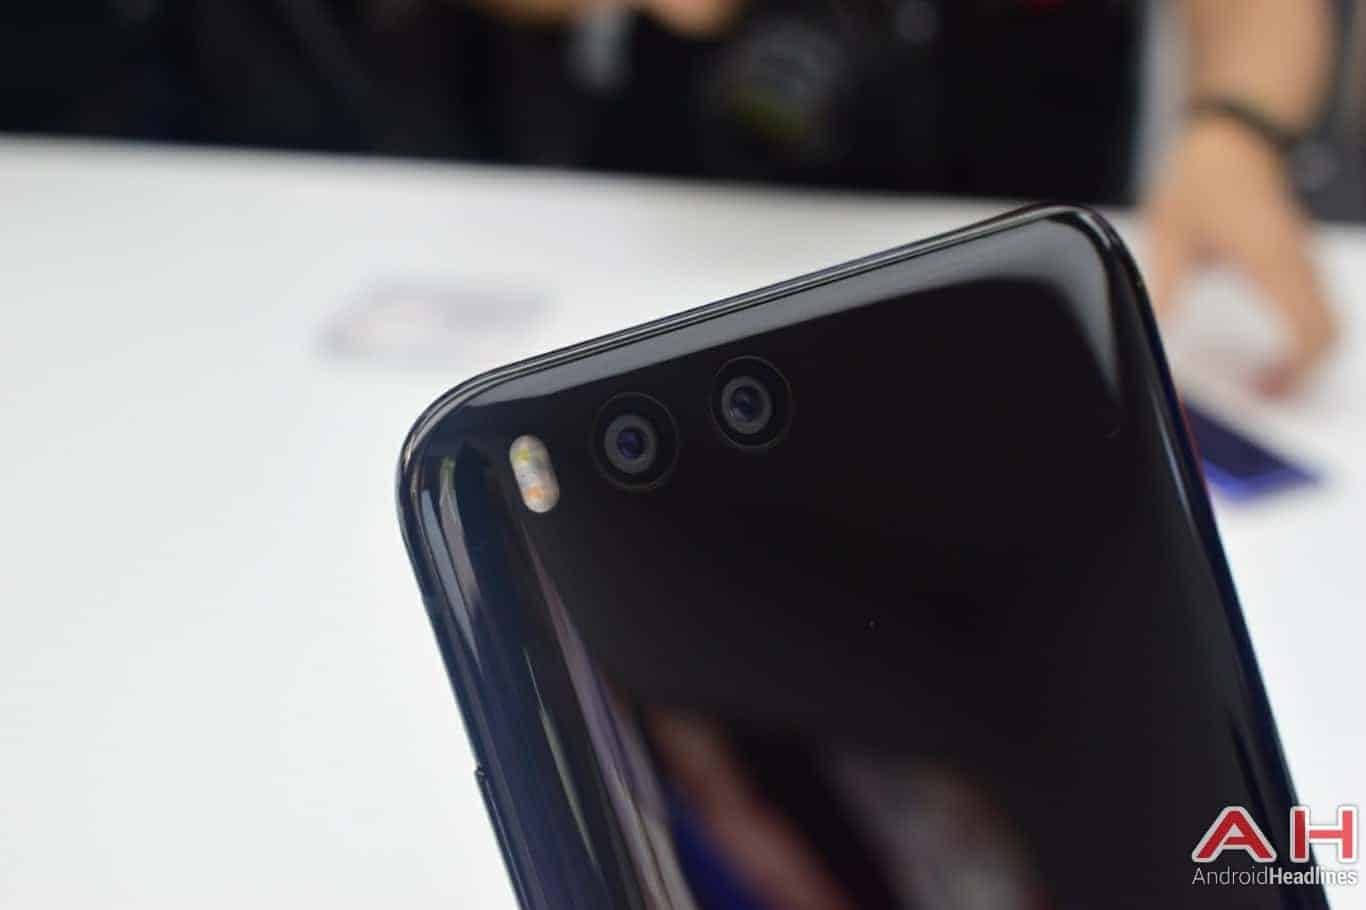 AH Xiaomi Mi 6 hands on 2